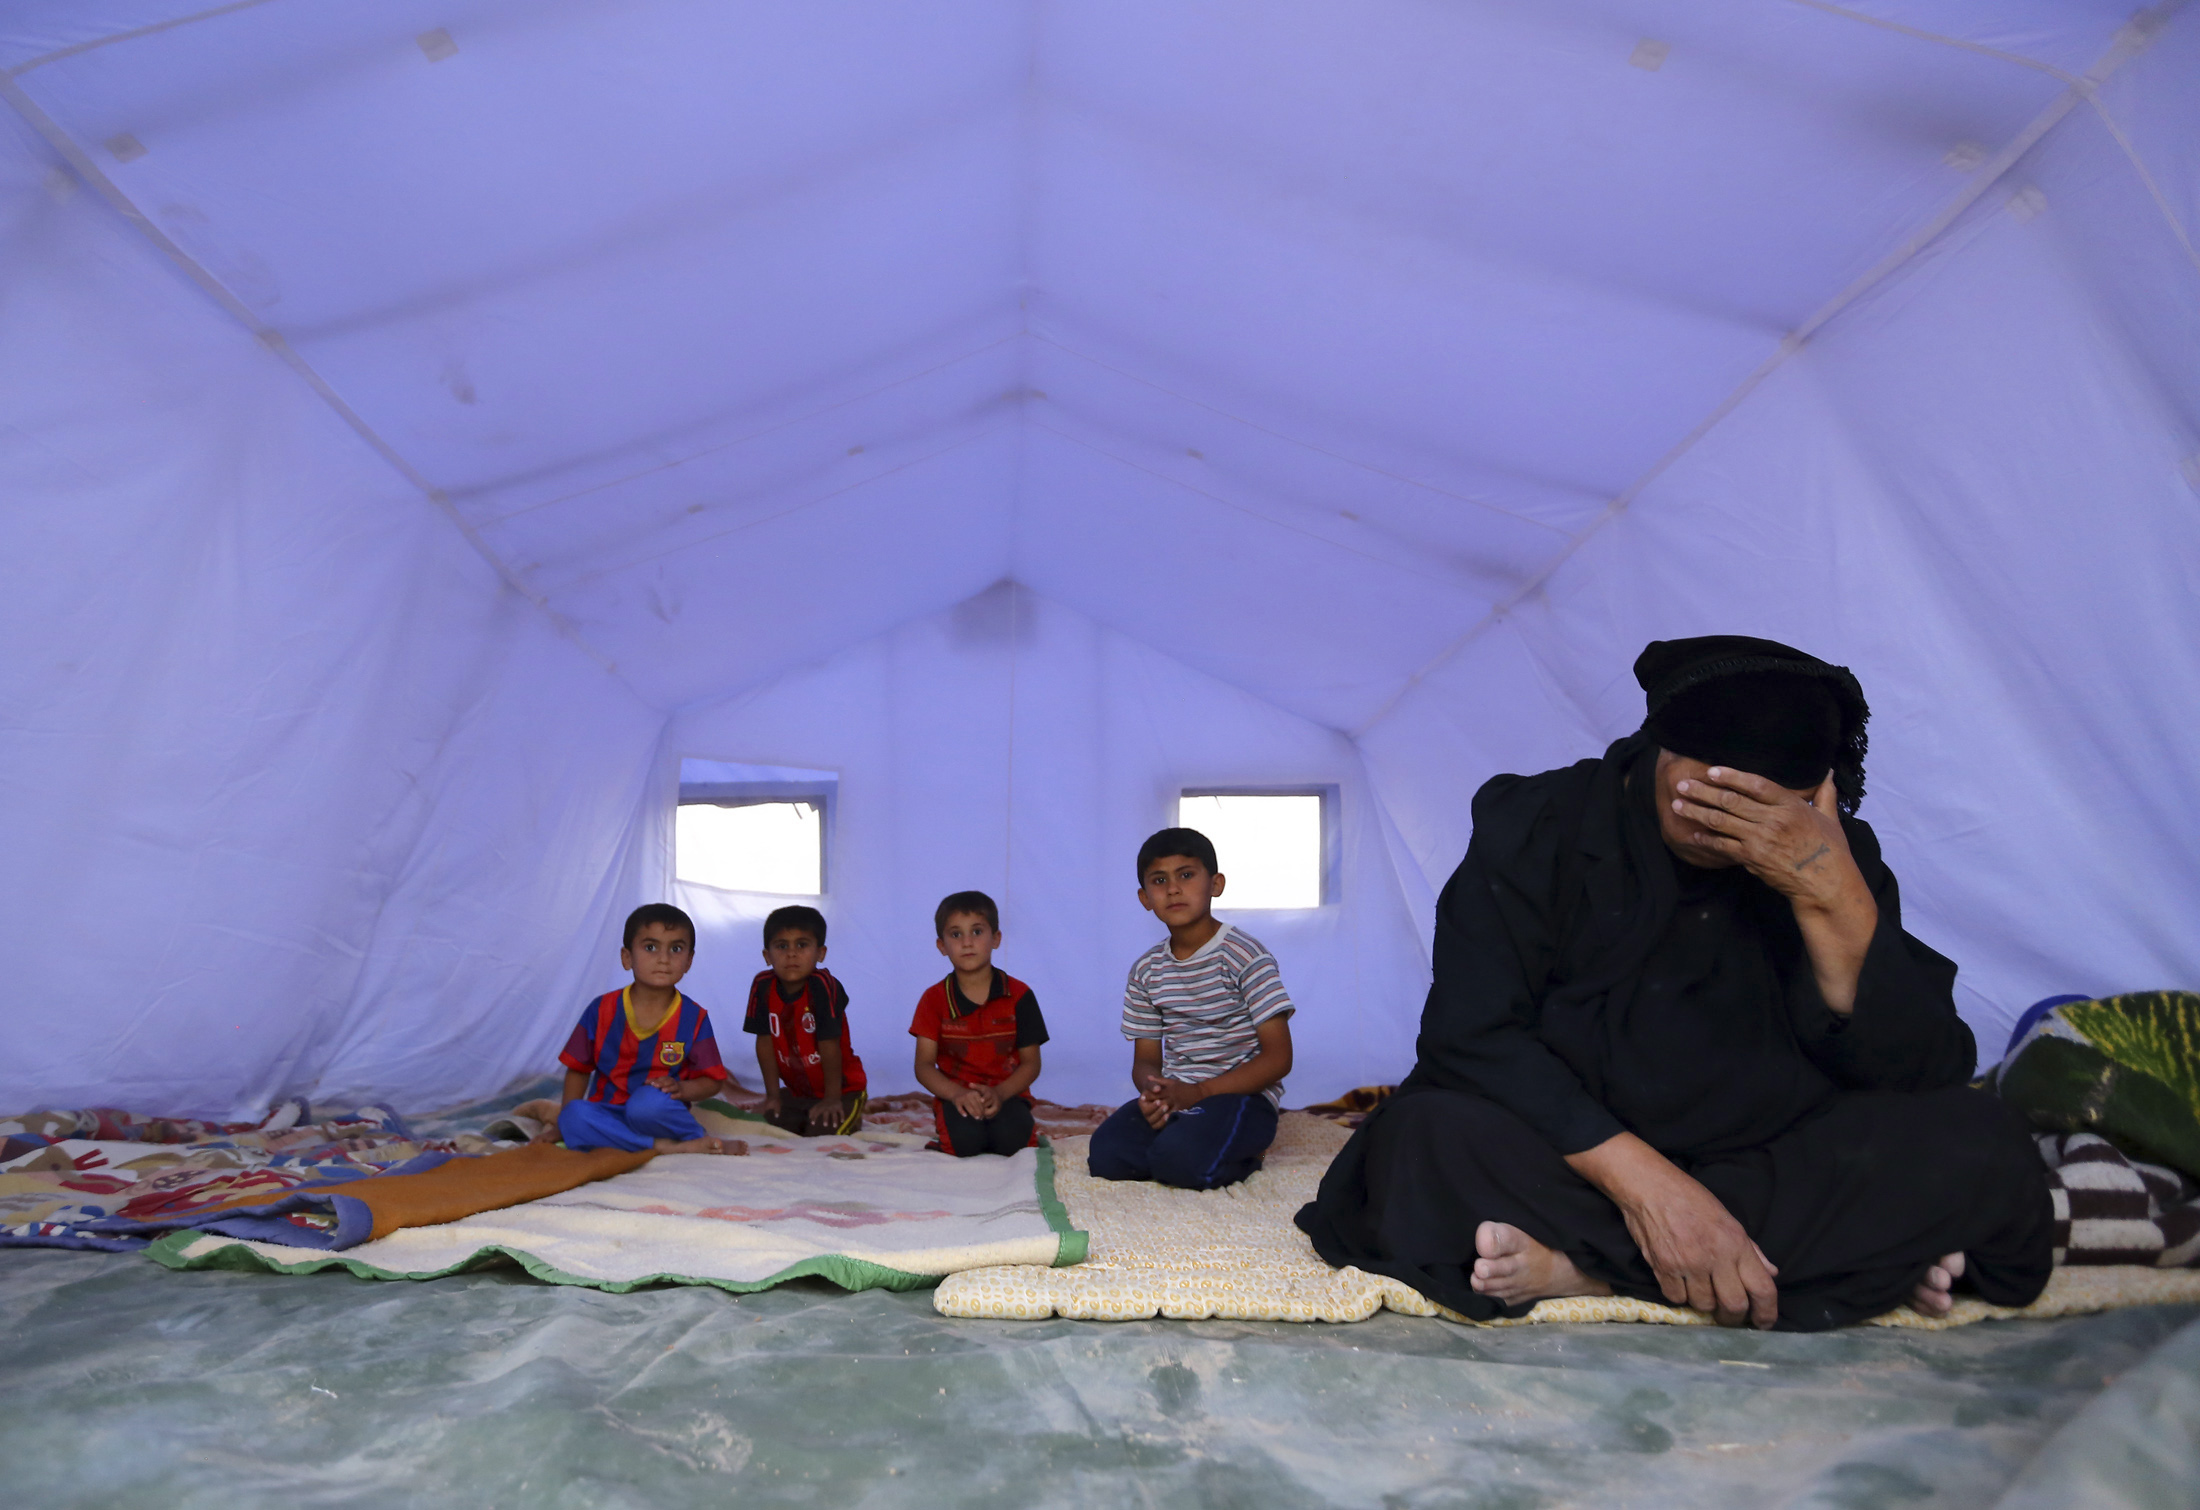 An Iraqi family, which fled from the violence in Mosul following the city's fall to ISIL, sits inside a tent at a camp on the outskirts of Arbil in Iraq's Kurdistan region, 12 June 2014. Reuters, stringer.